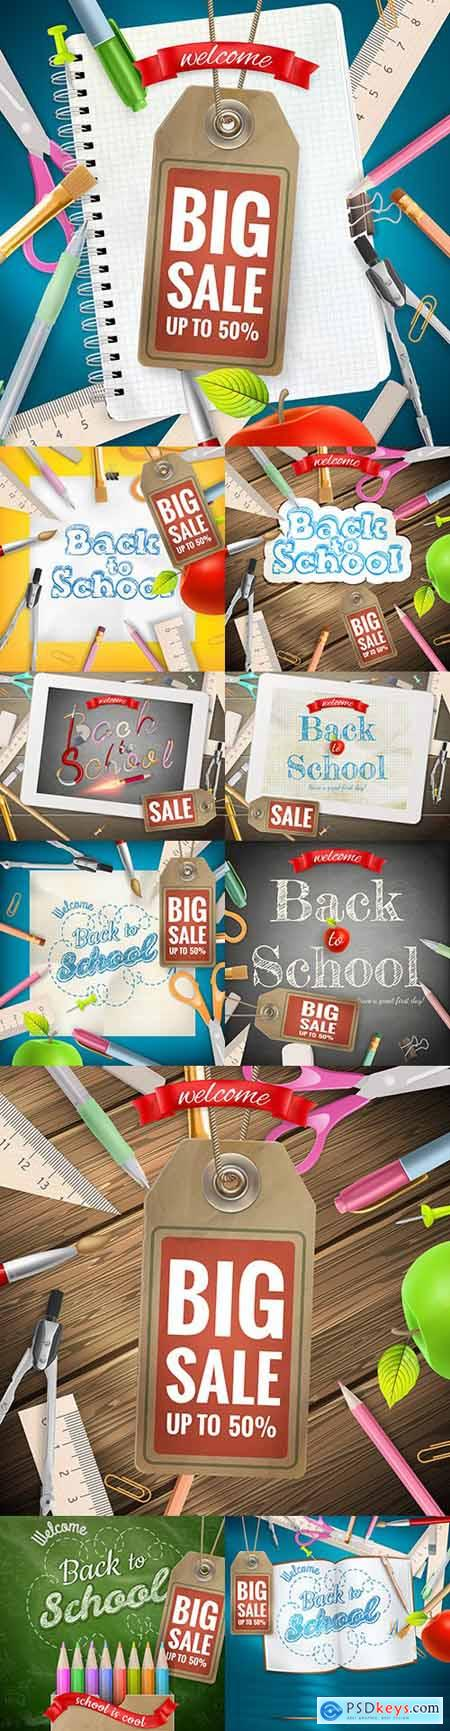 Back to school and accessories collection illustration 47